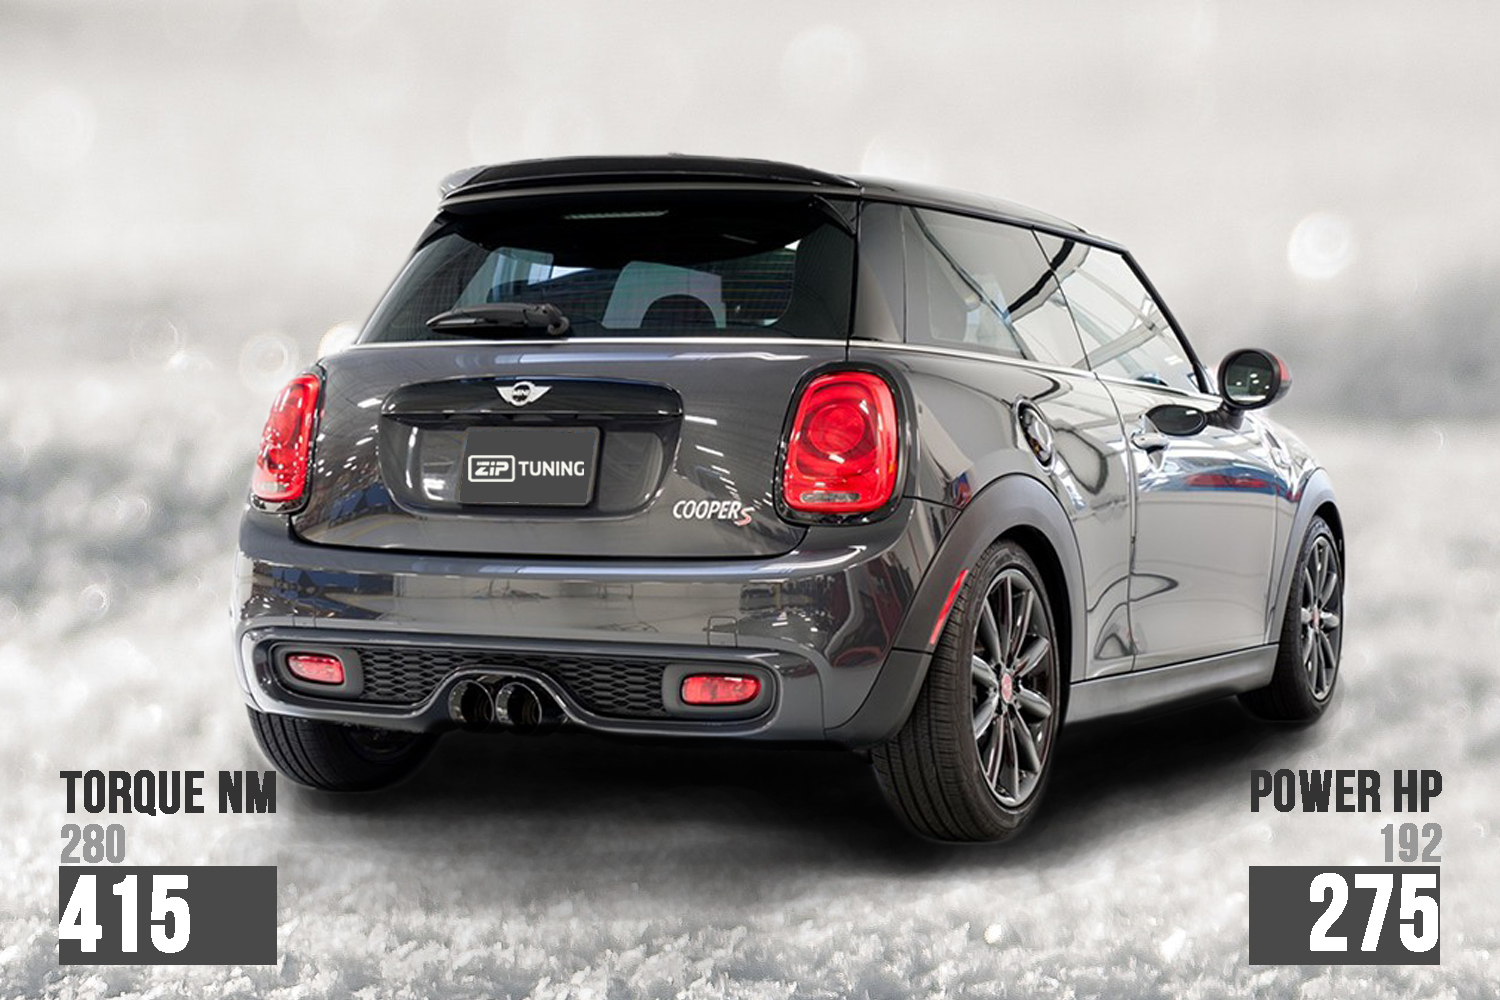 Mini Cooper S F56 Tuning 275 Hp And 415 Nm Ziptuning Blog